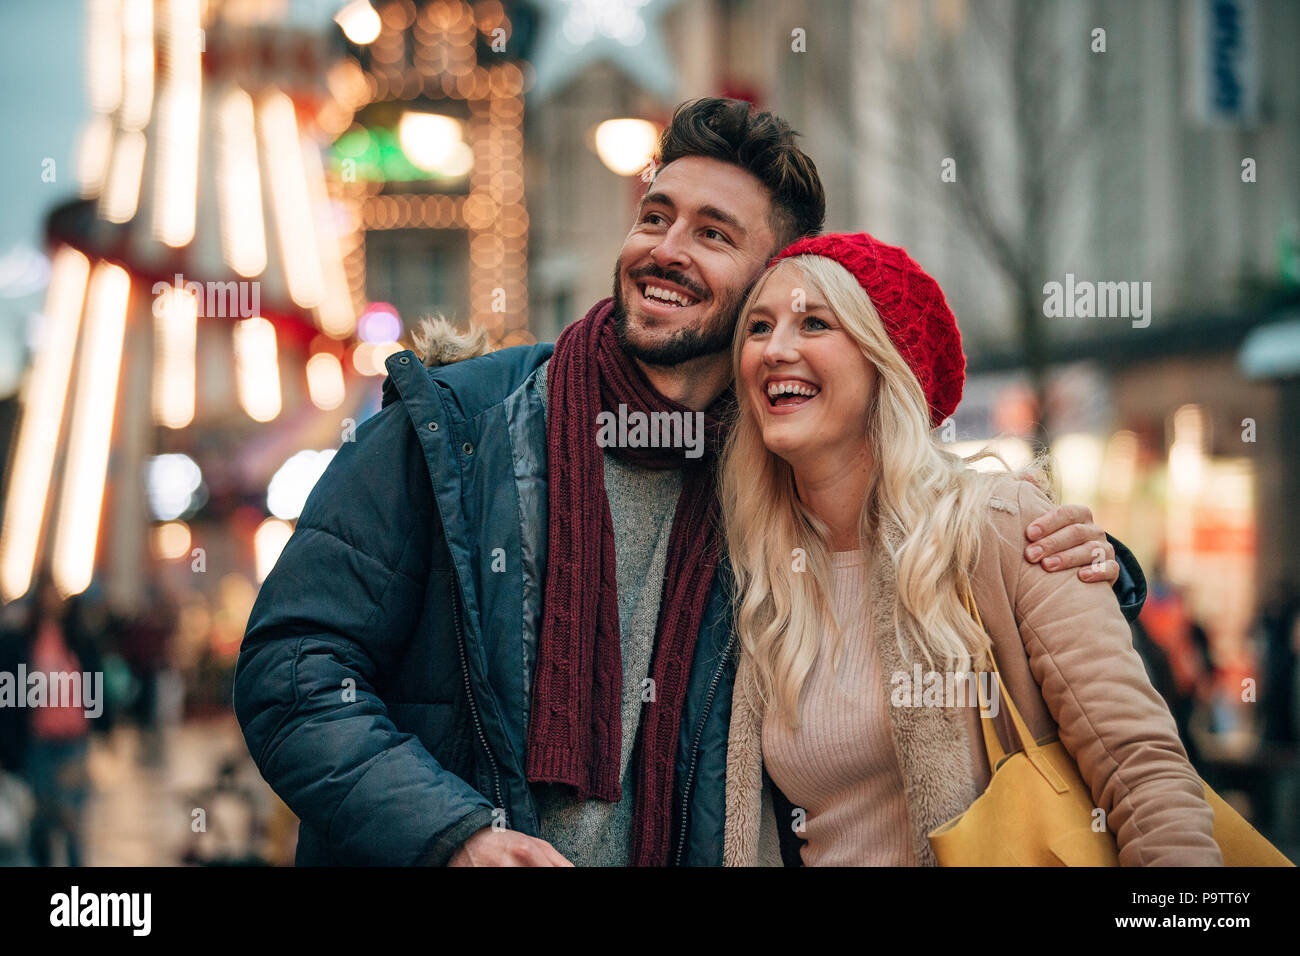 Front view of a man with his arm around his girlfriend outside. The couple are outside on a city street . There is a fair groung ride in the backgroun - Stock Image